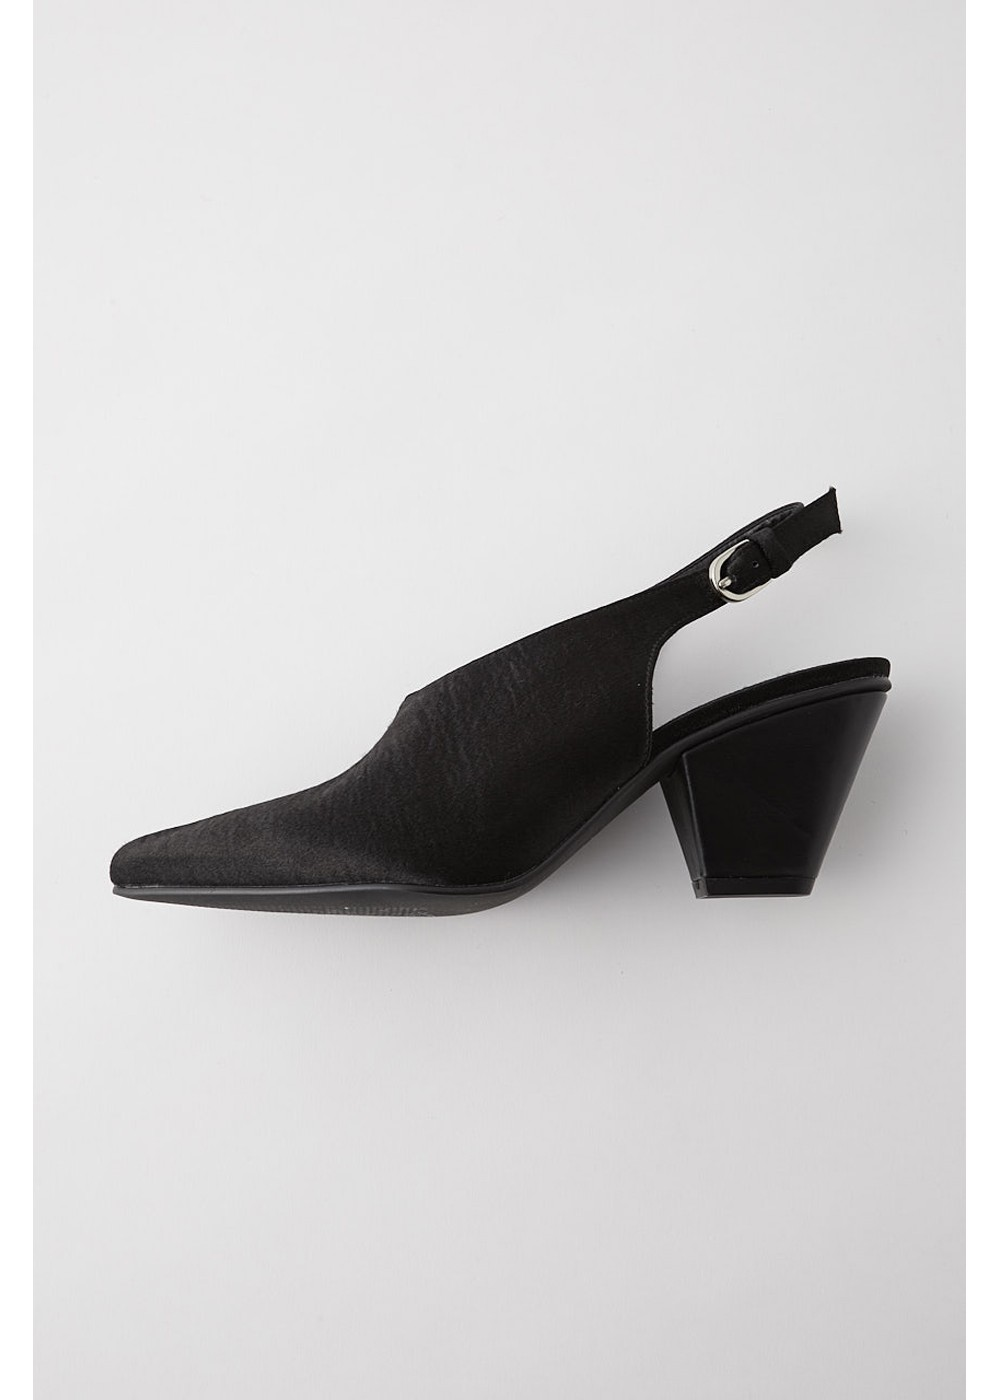 【最大60%OFF】SLING BACK LUSTER PUMPS|BLK|パンプス|MOUSSY